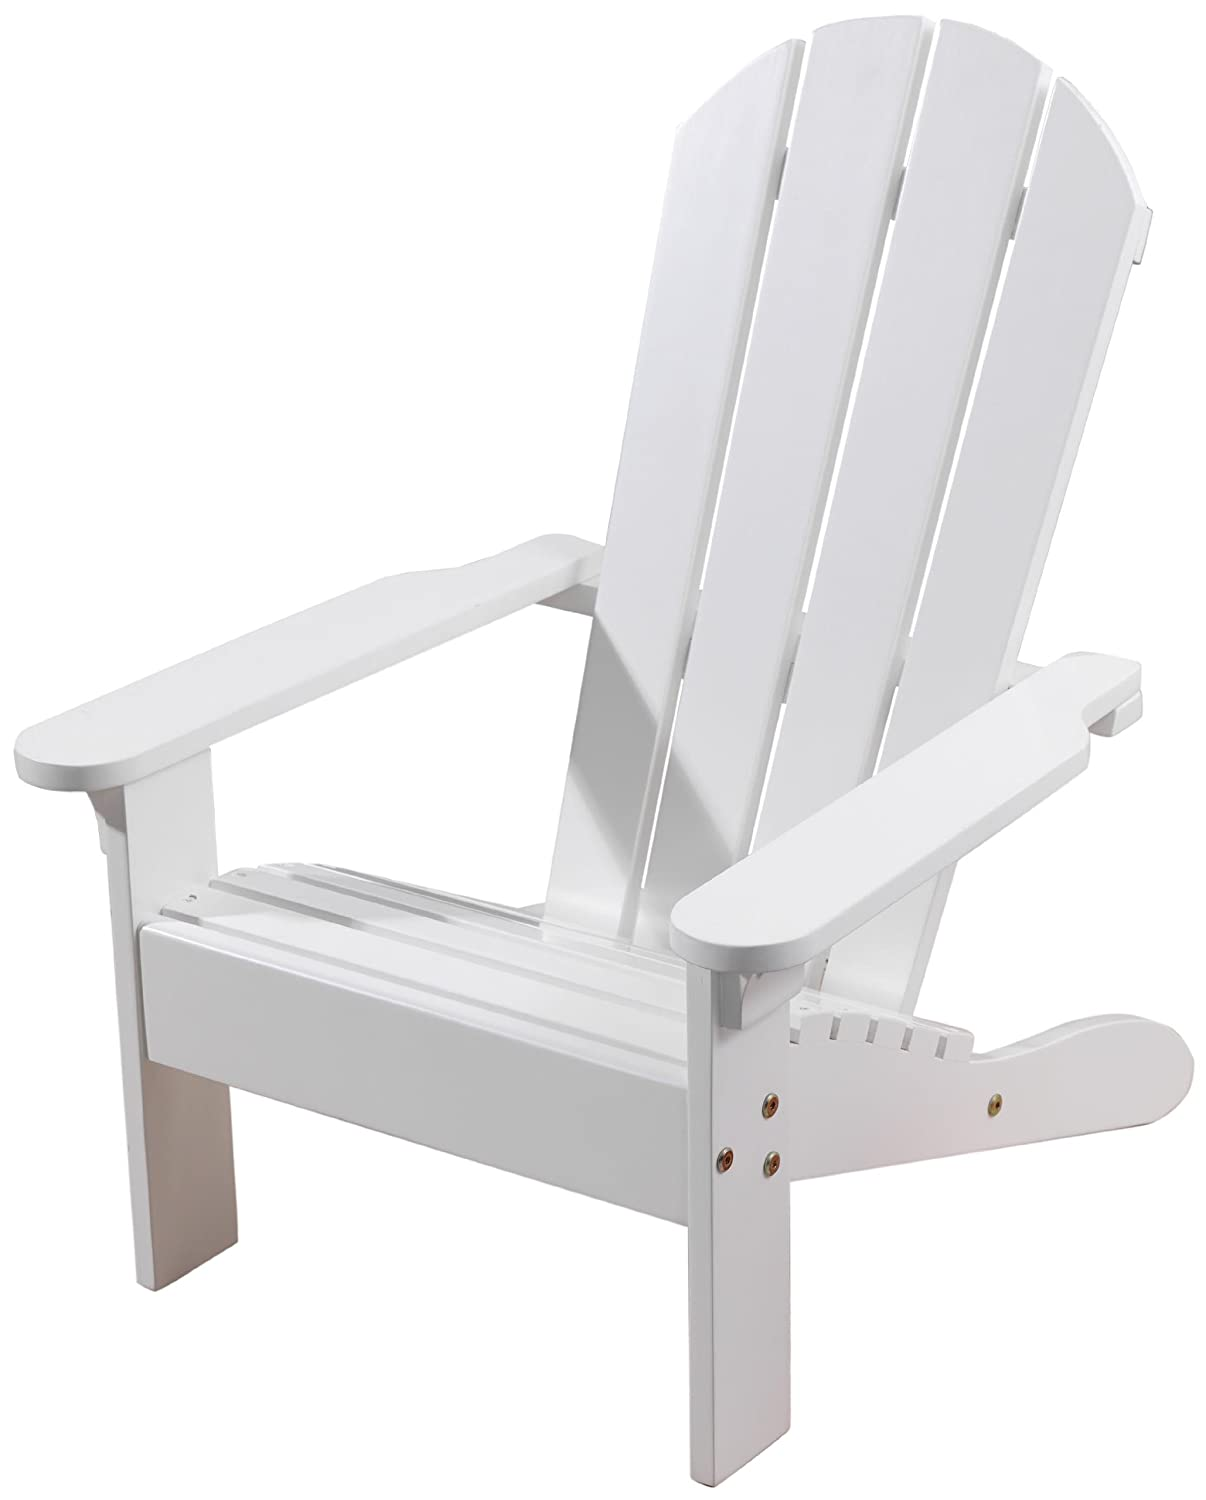 KidKraft Wooden Adirondack Children's Outdoor Chair, Weather-Resistant - White